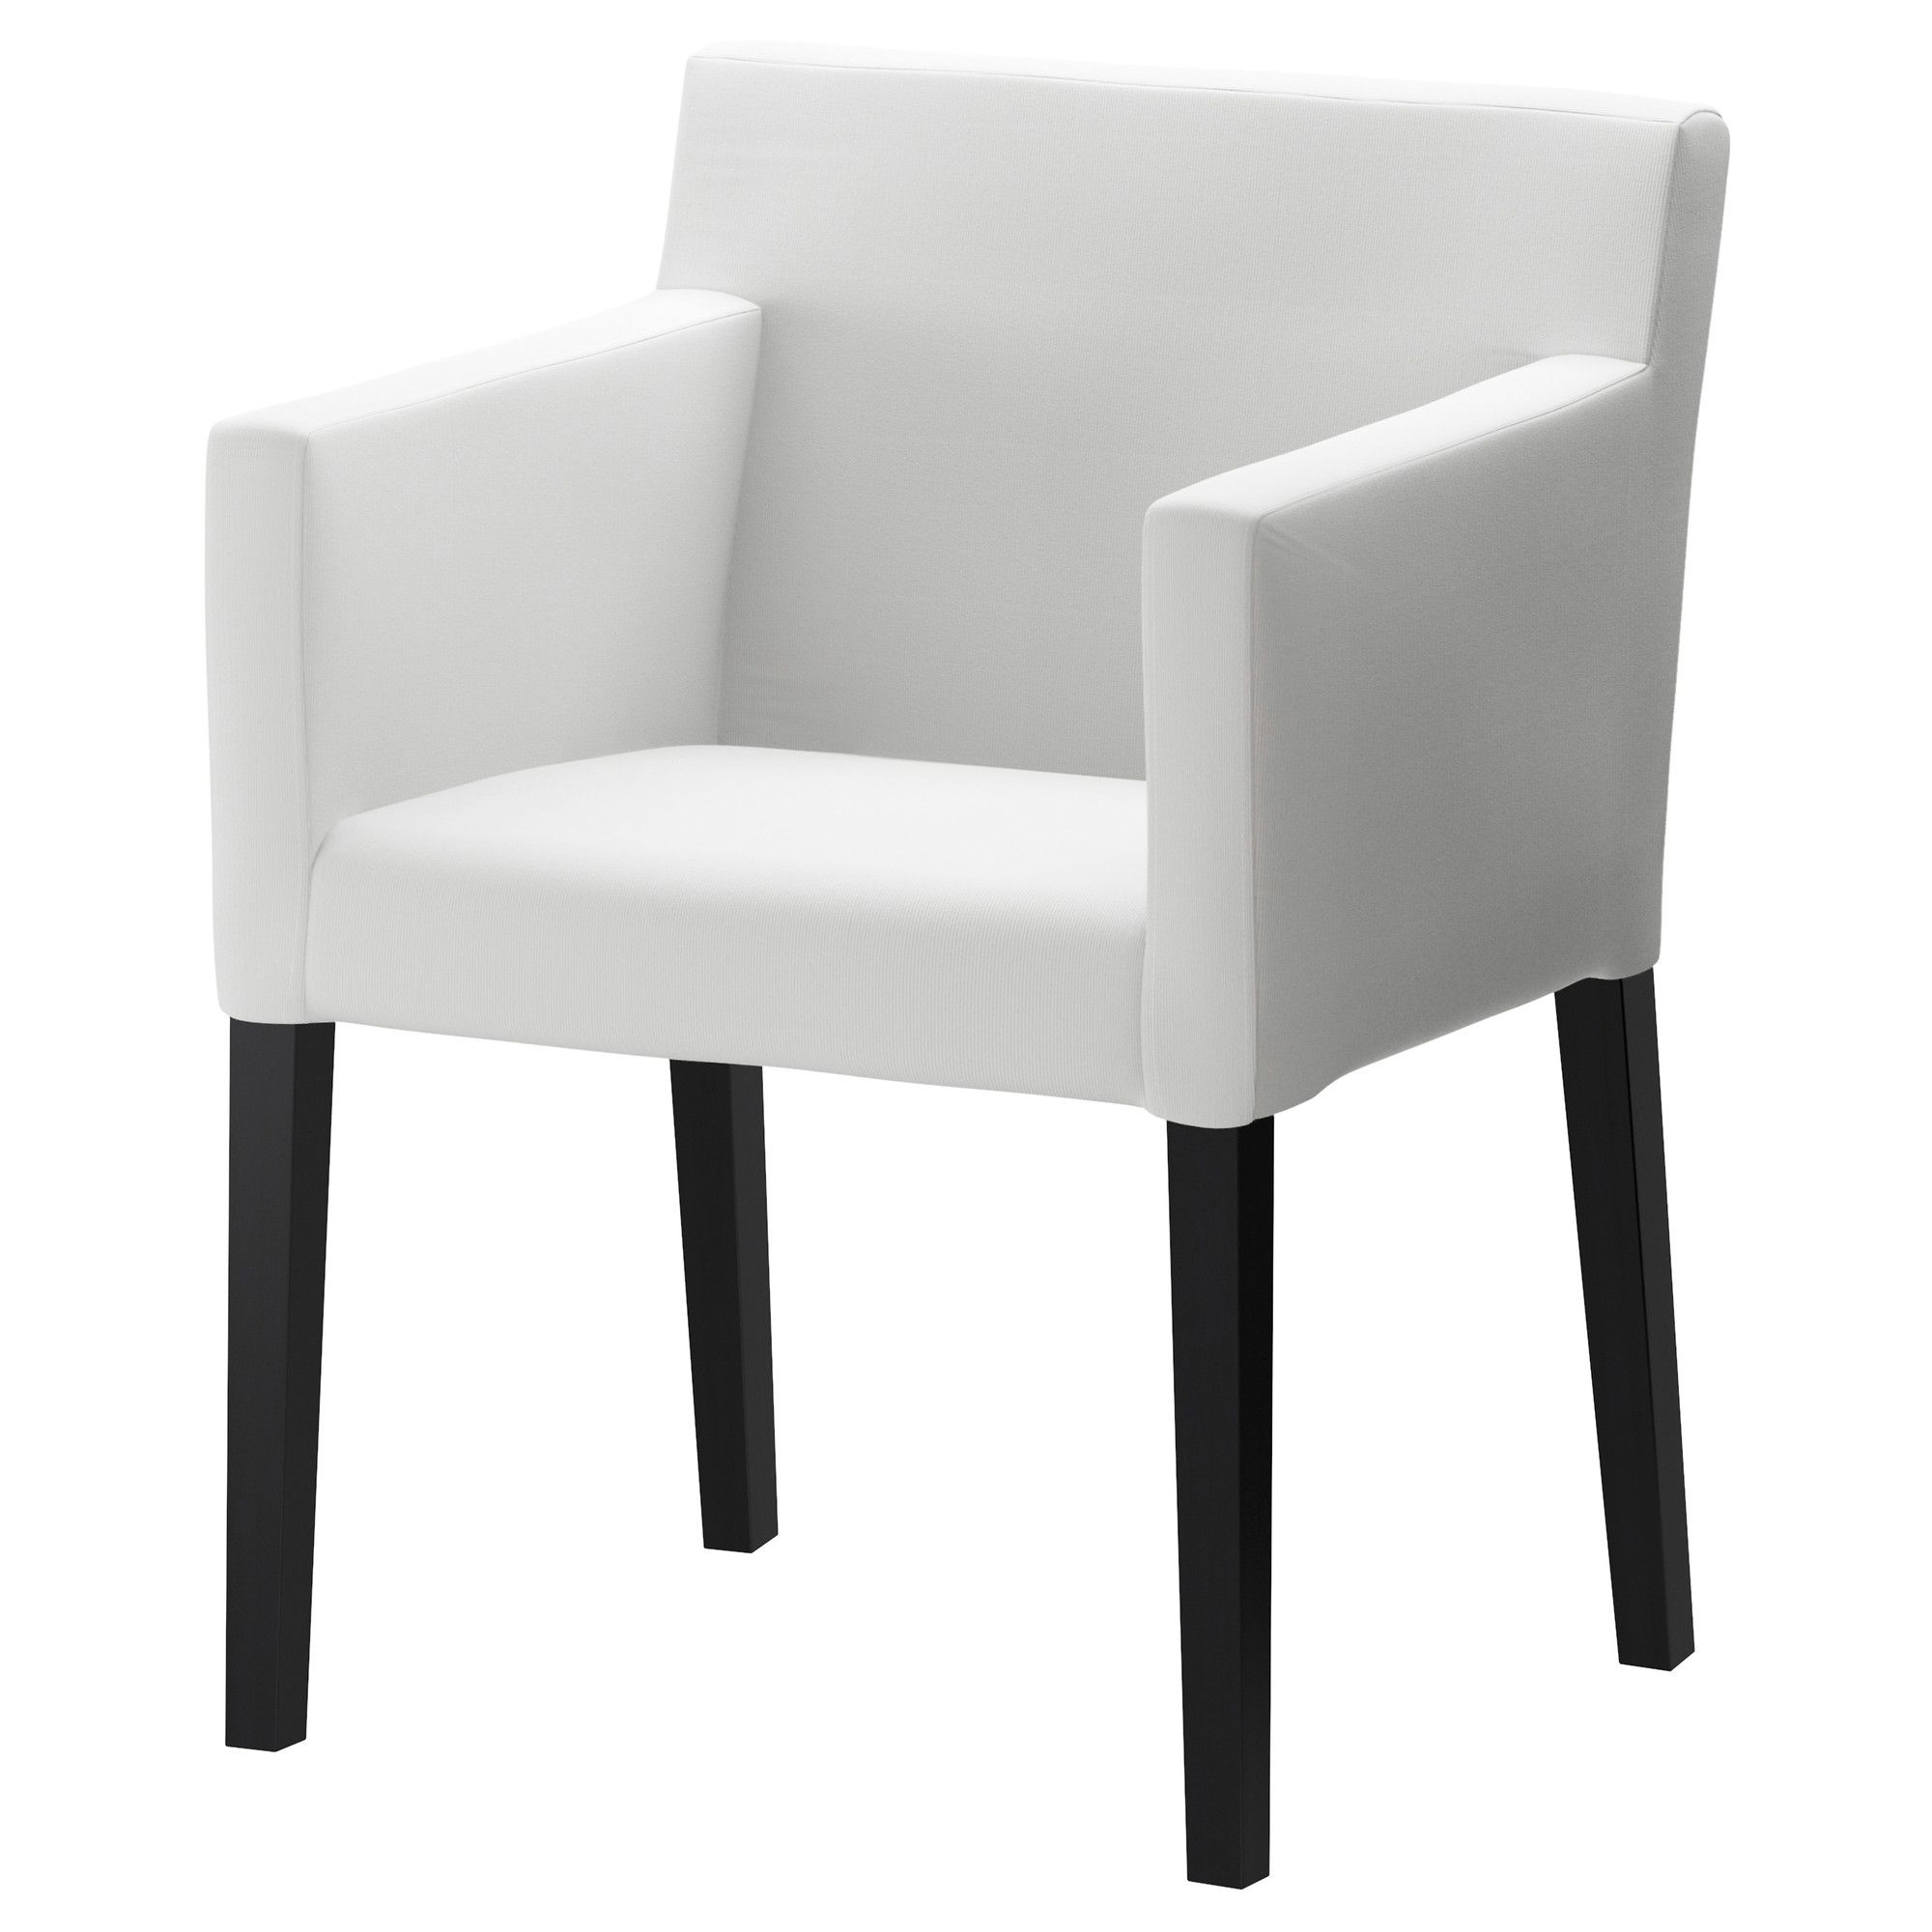 Strange Nils Armchair Blekinge White Ikea Not A Bad Upholstered Download Free Architecture Designs Scobabritishbridgeorg